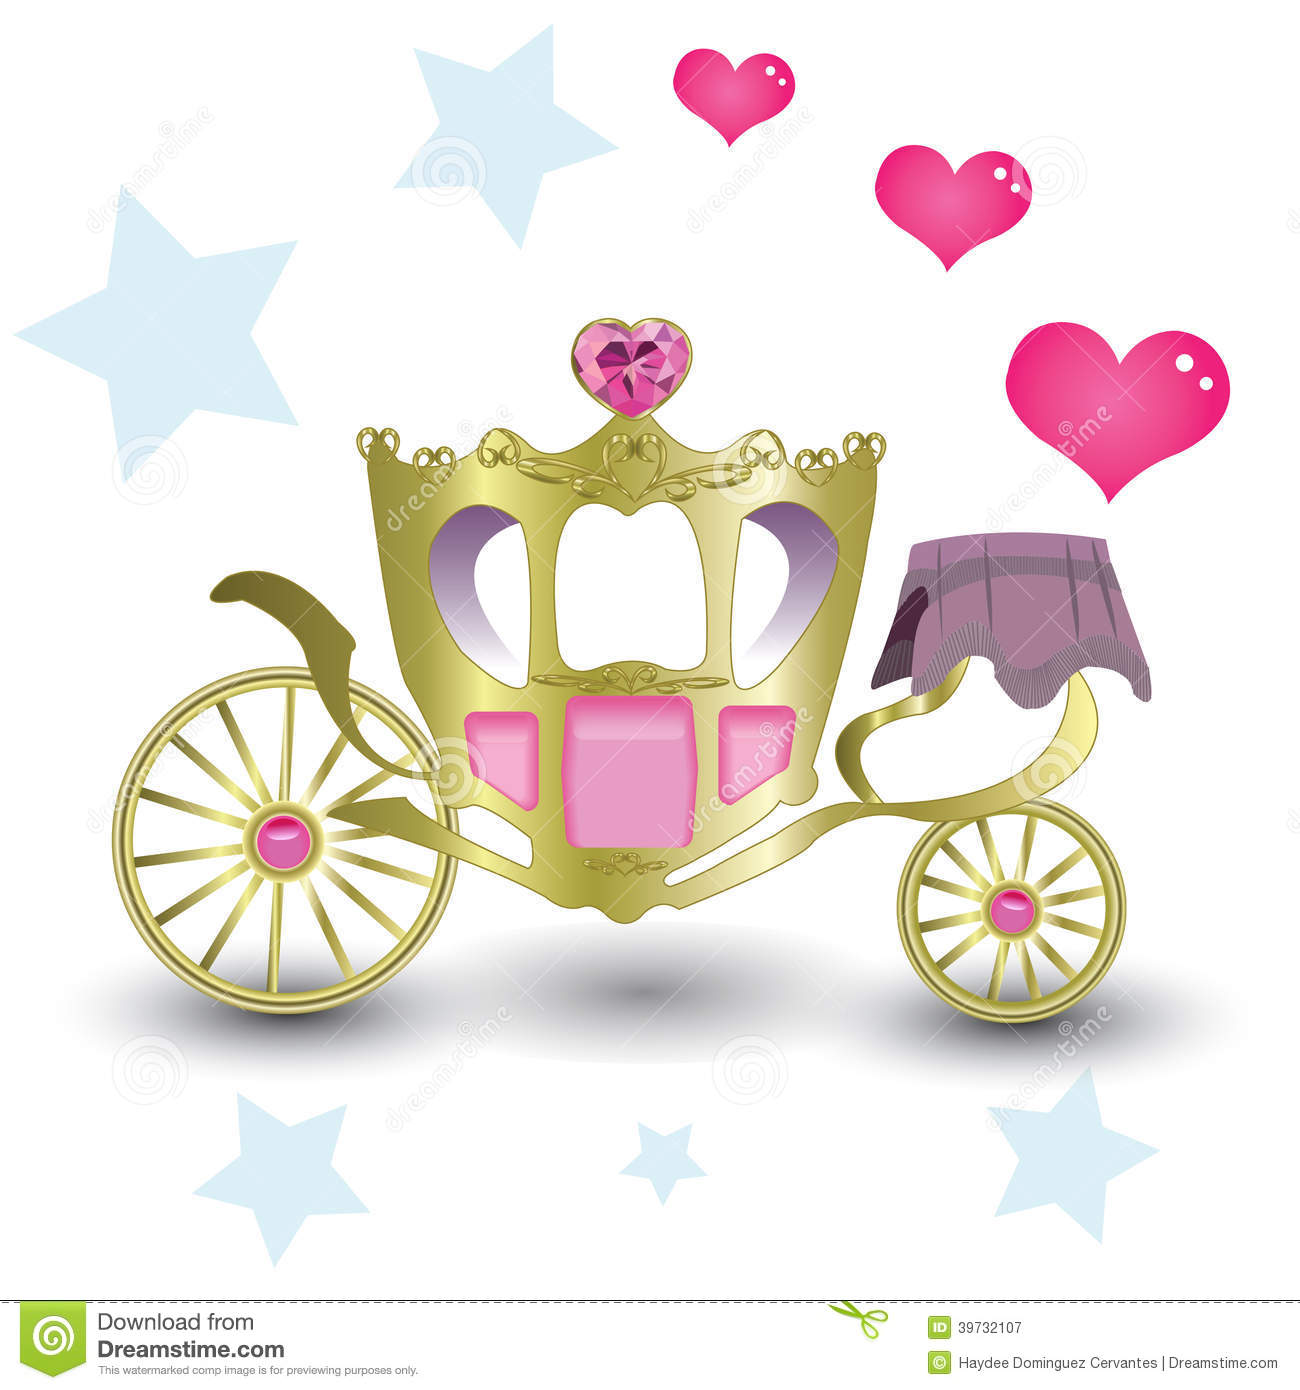 Royal carriage in silhouette royalty free stock vector art - Princess Royal Carriage Stock Illustration Image 39732107